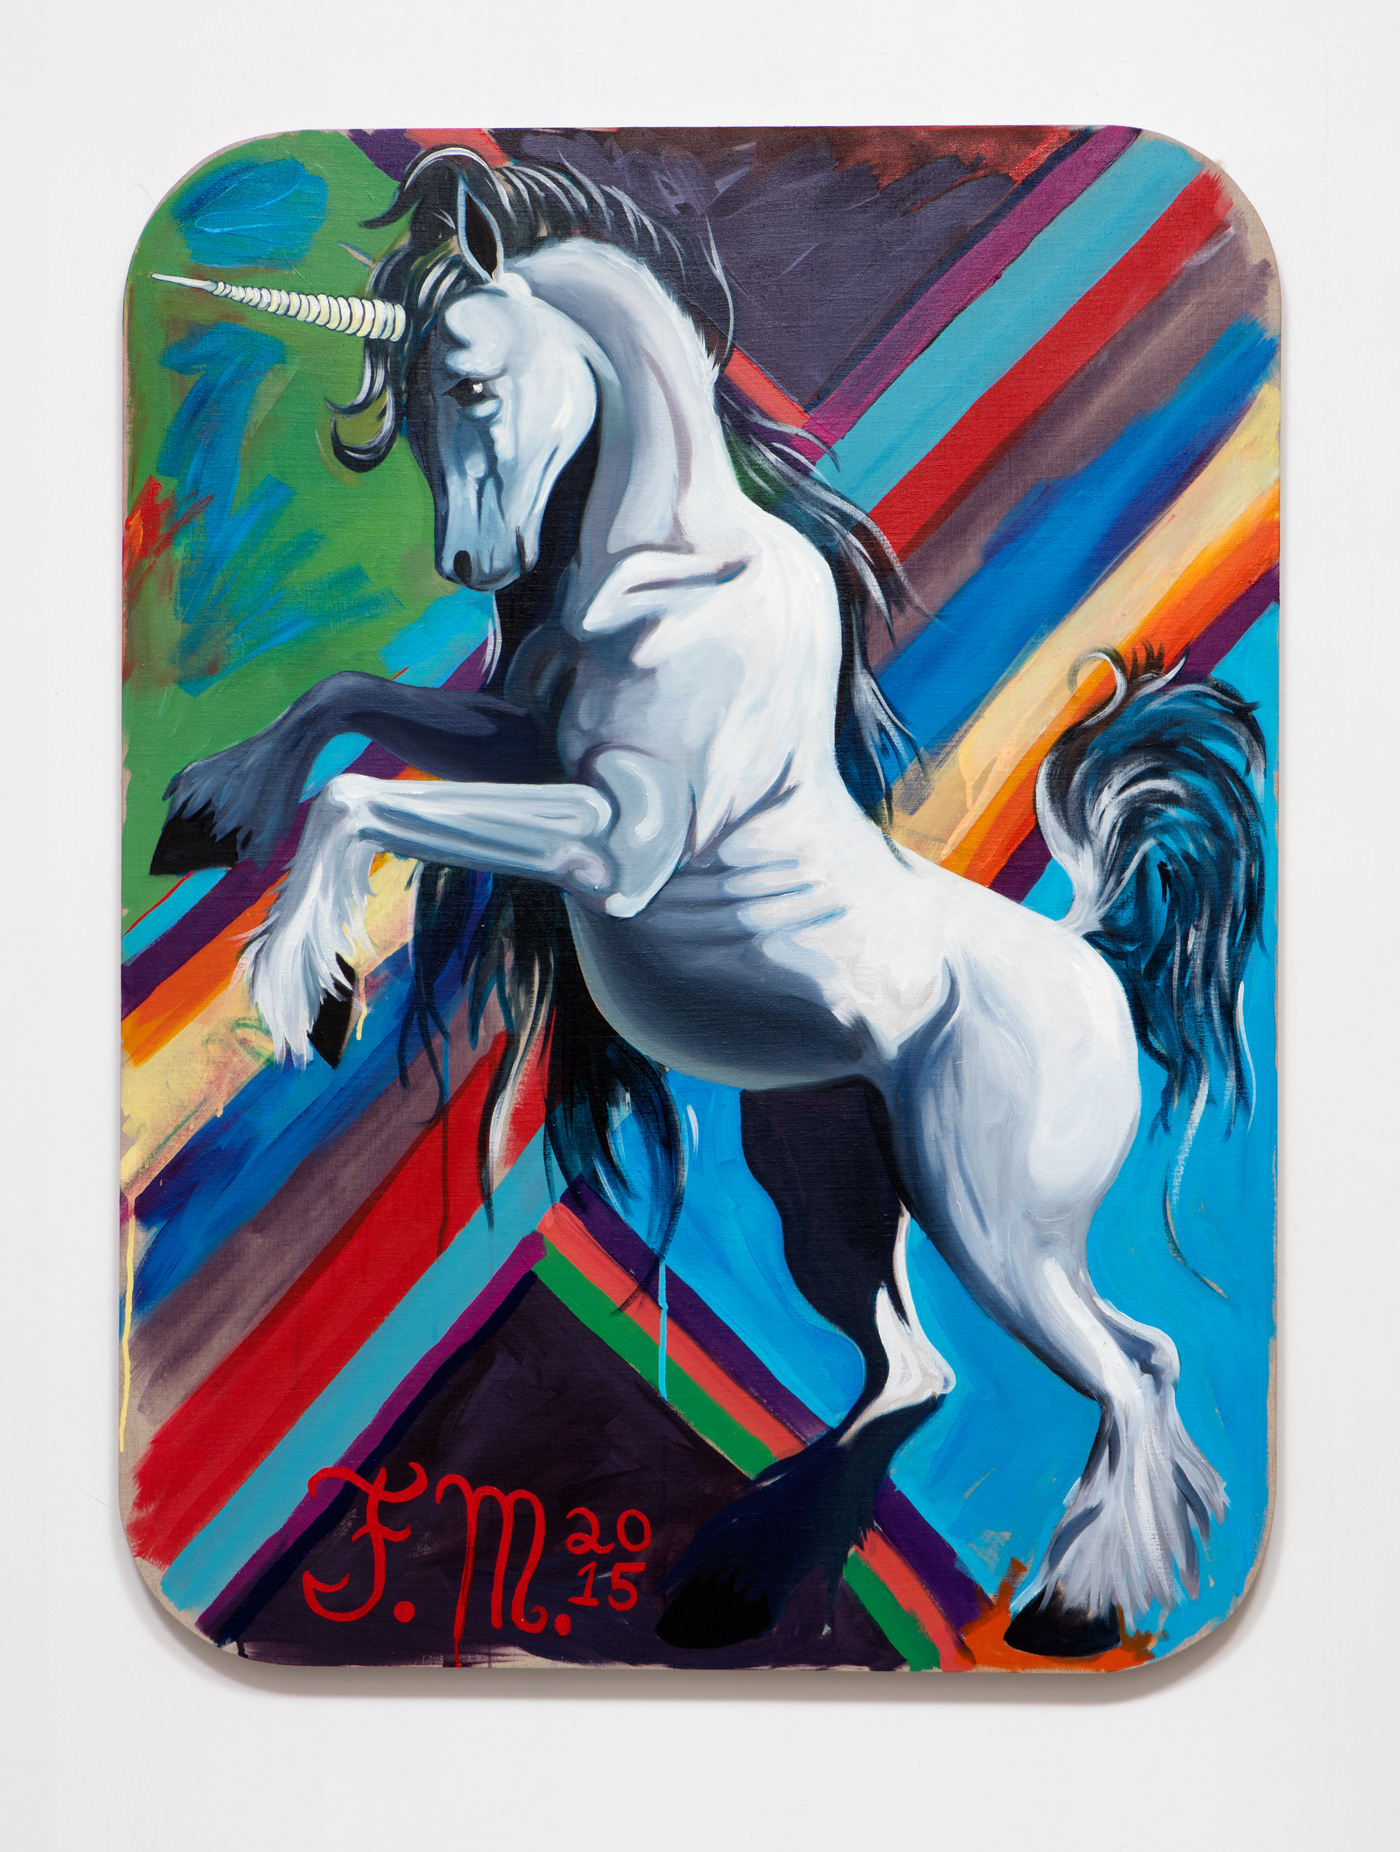 SLATE: Unicorn Painting No. 3 (Erin Cluley – Fern Blue Lady)  , 2015 Oil and Golden acrylic on linen stretched over custom panel 48 x 36 inches